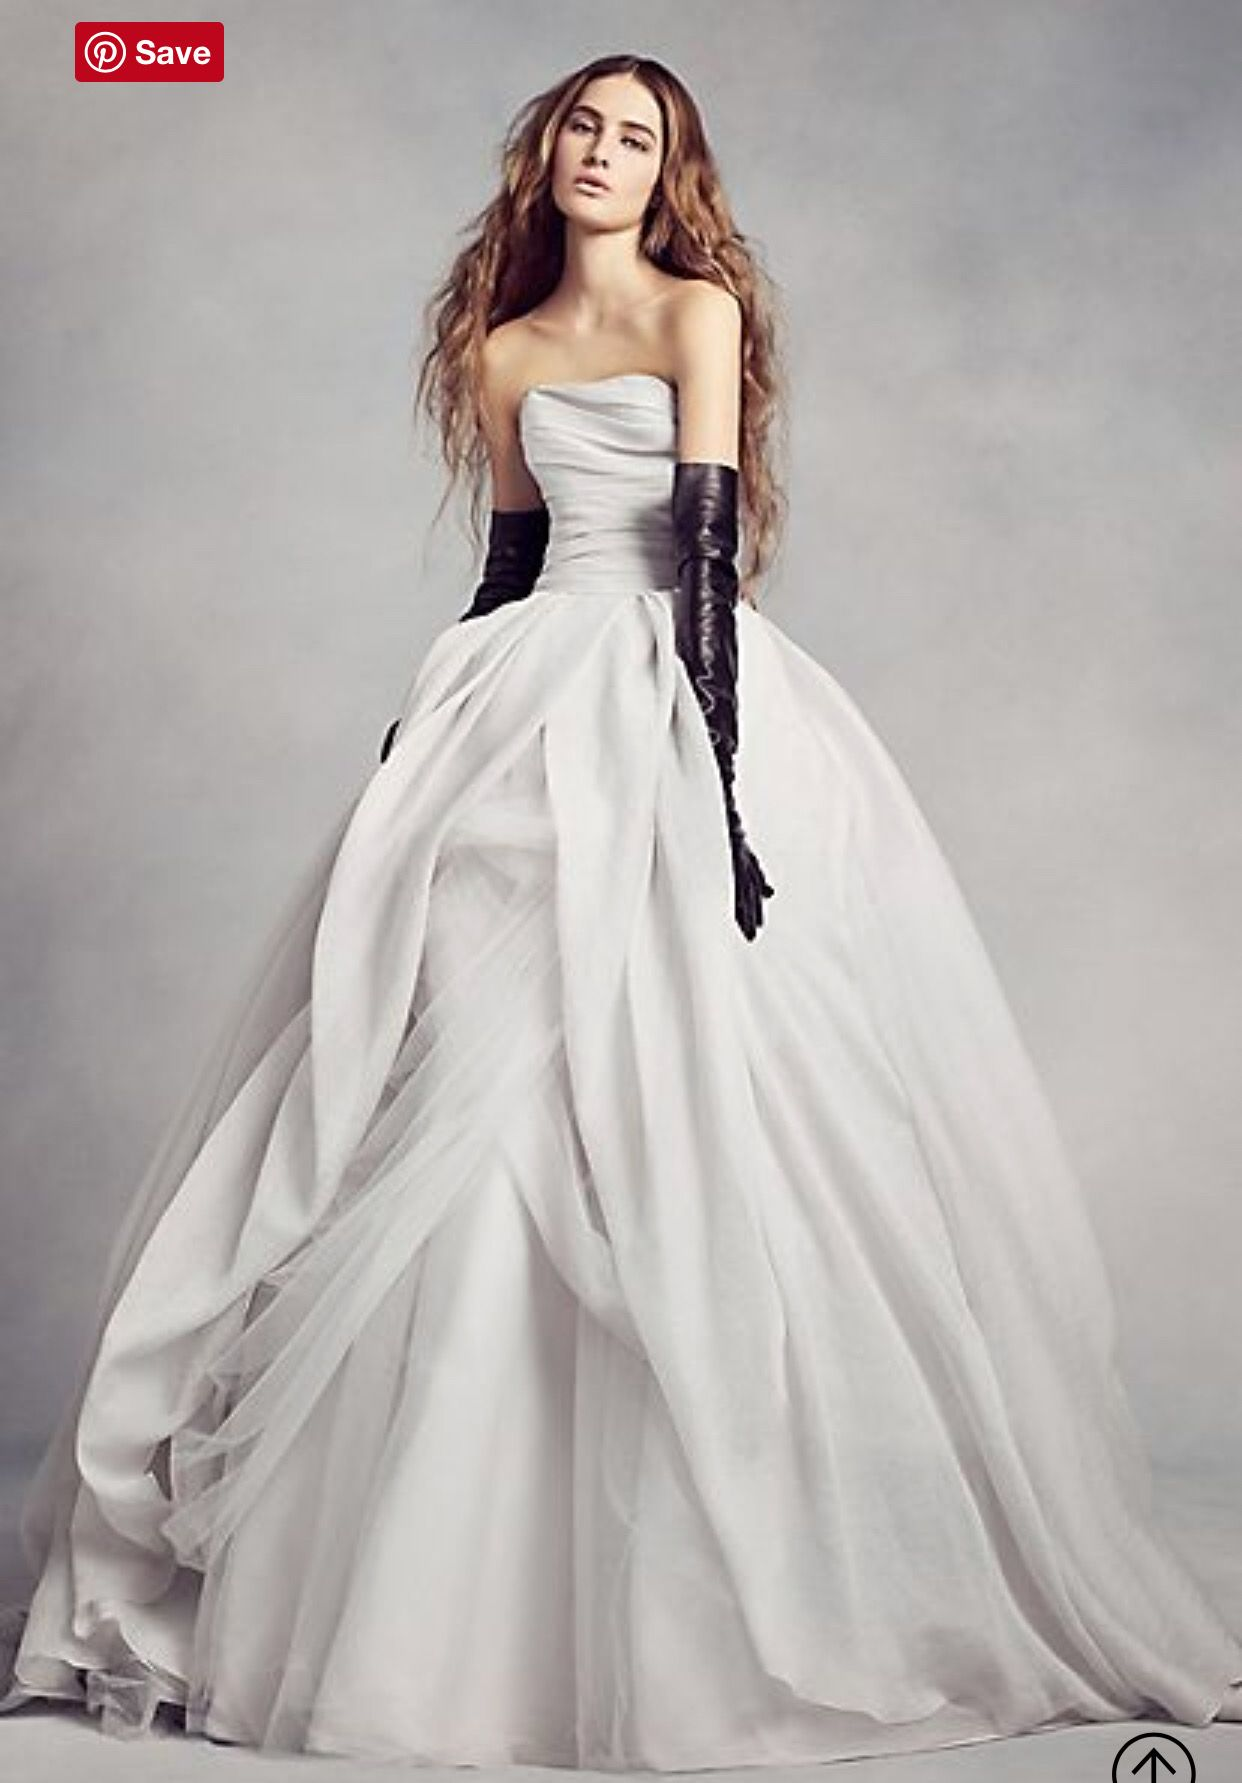 Vera wang ball gown wedding dress  Pin by Selina Kyle on 服  Pinterest  Ball gown dresses Ball gowns